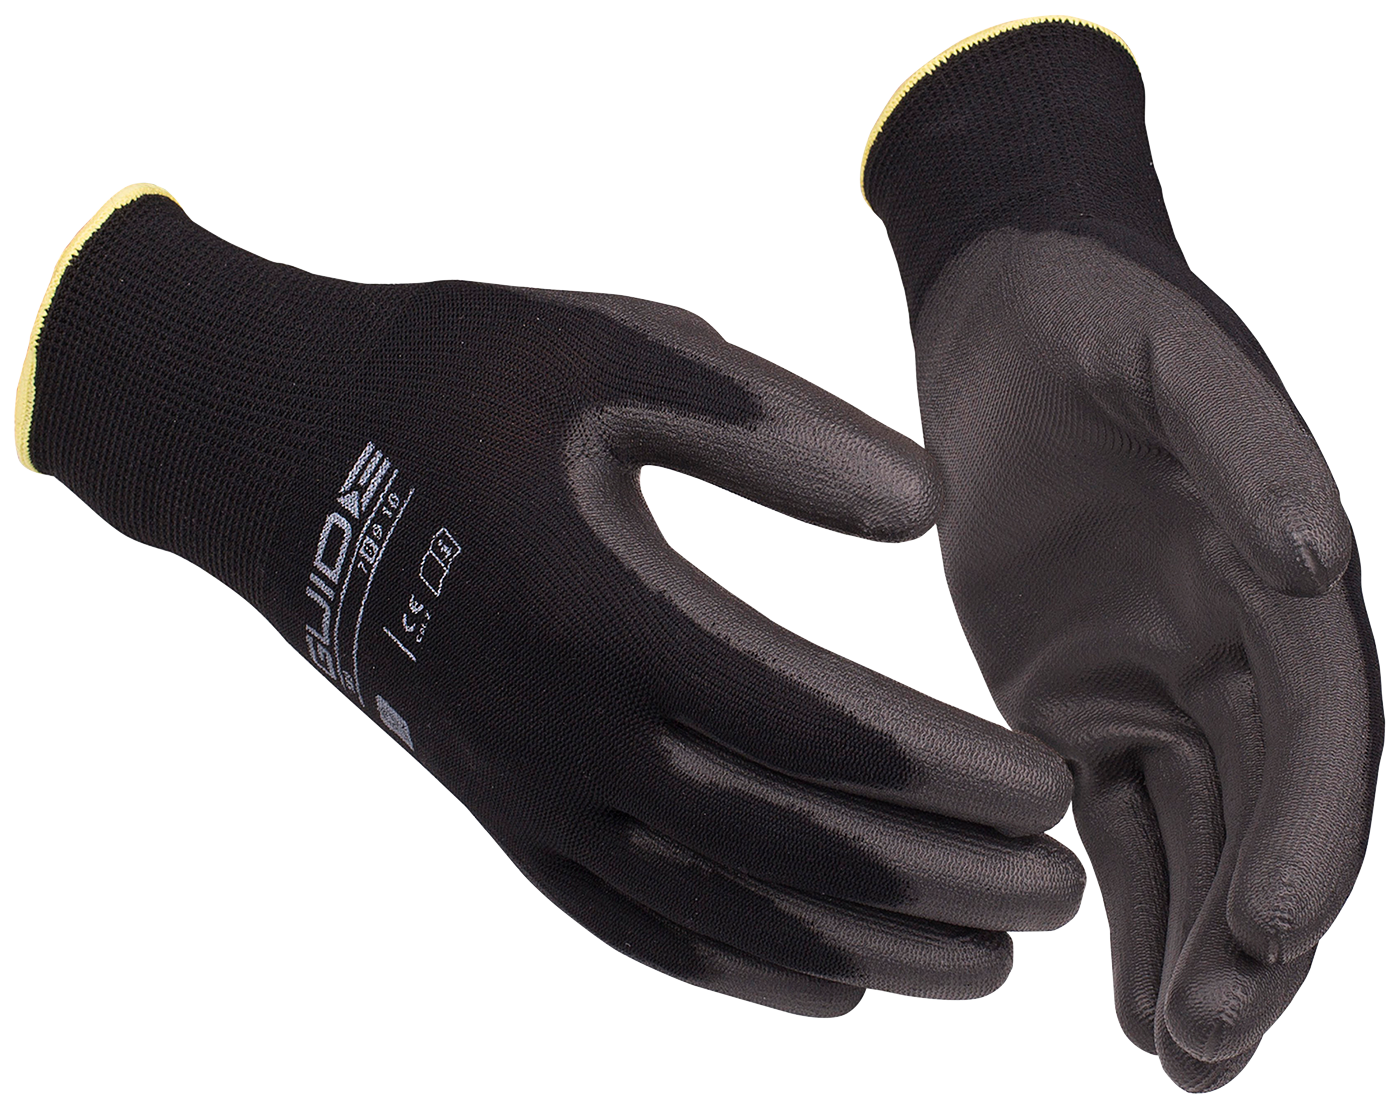 Thin working glove GUIDE 589